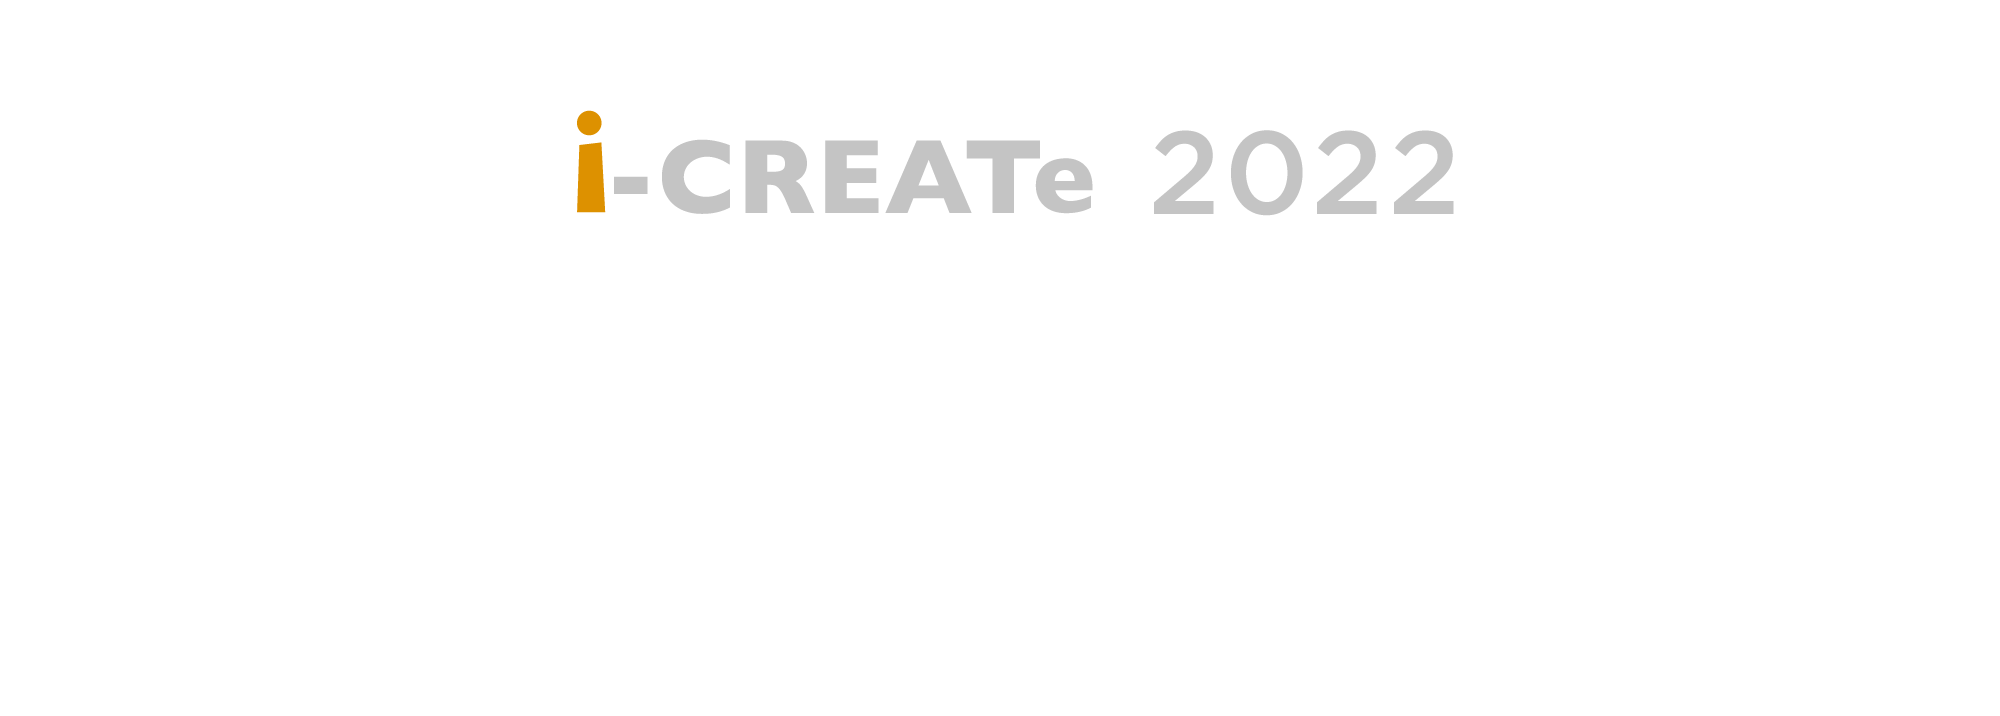 i-CREATe 2022 The 15th International Convention on Rehabilitation Engineering and Assistive Technology